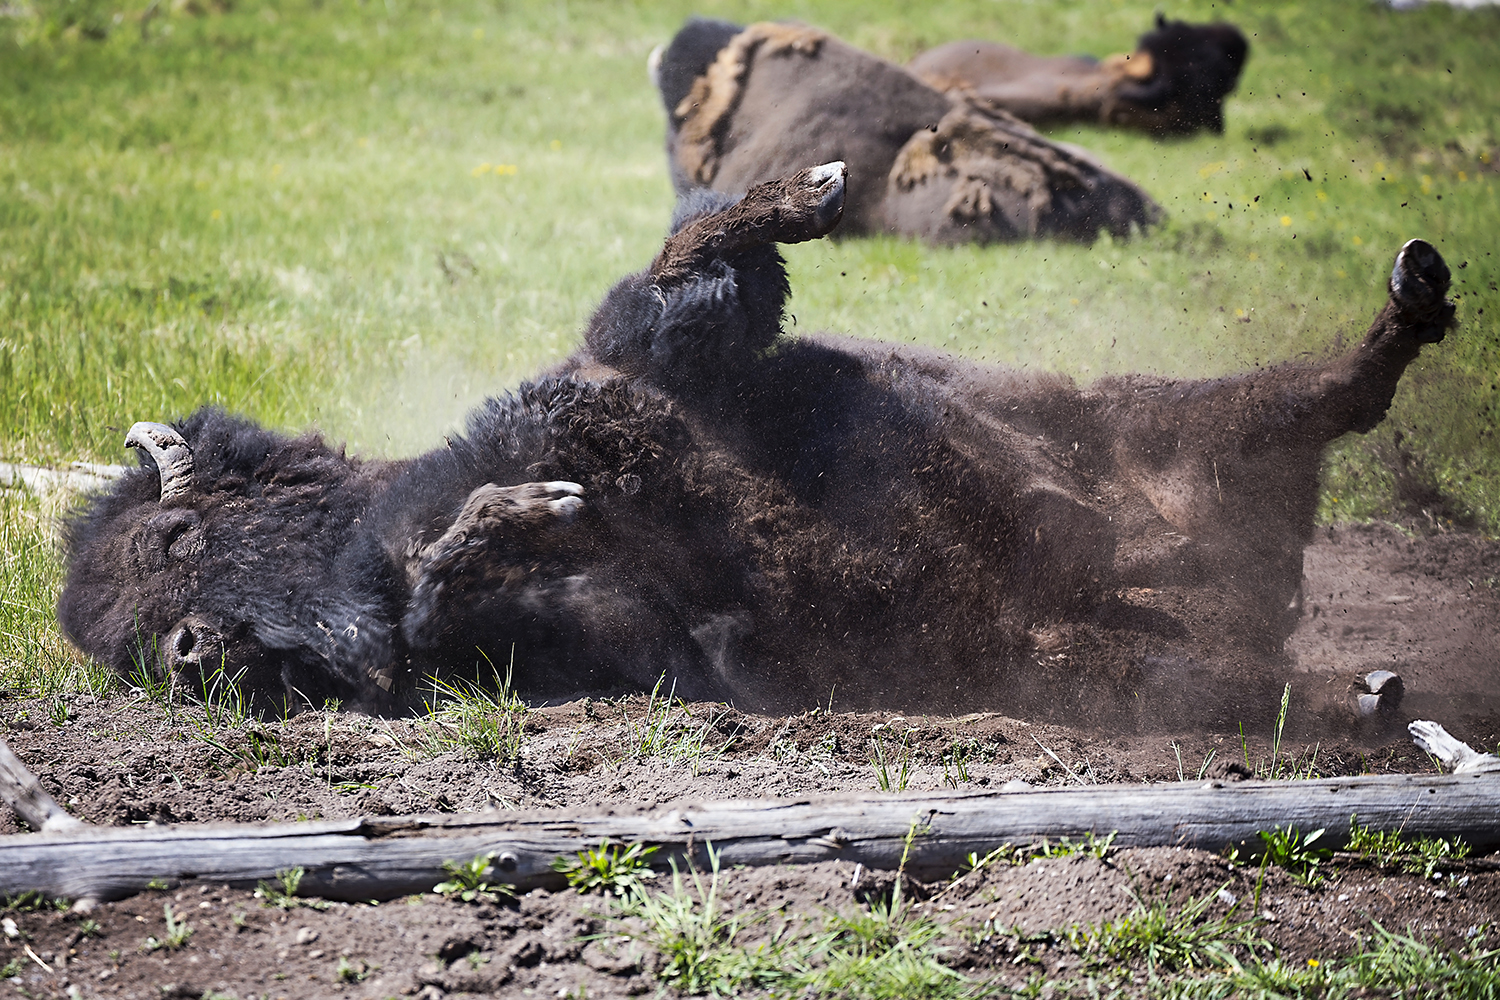 Hilarious Bison, Yellowstone National Park